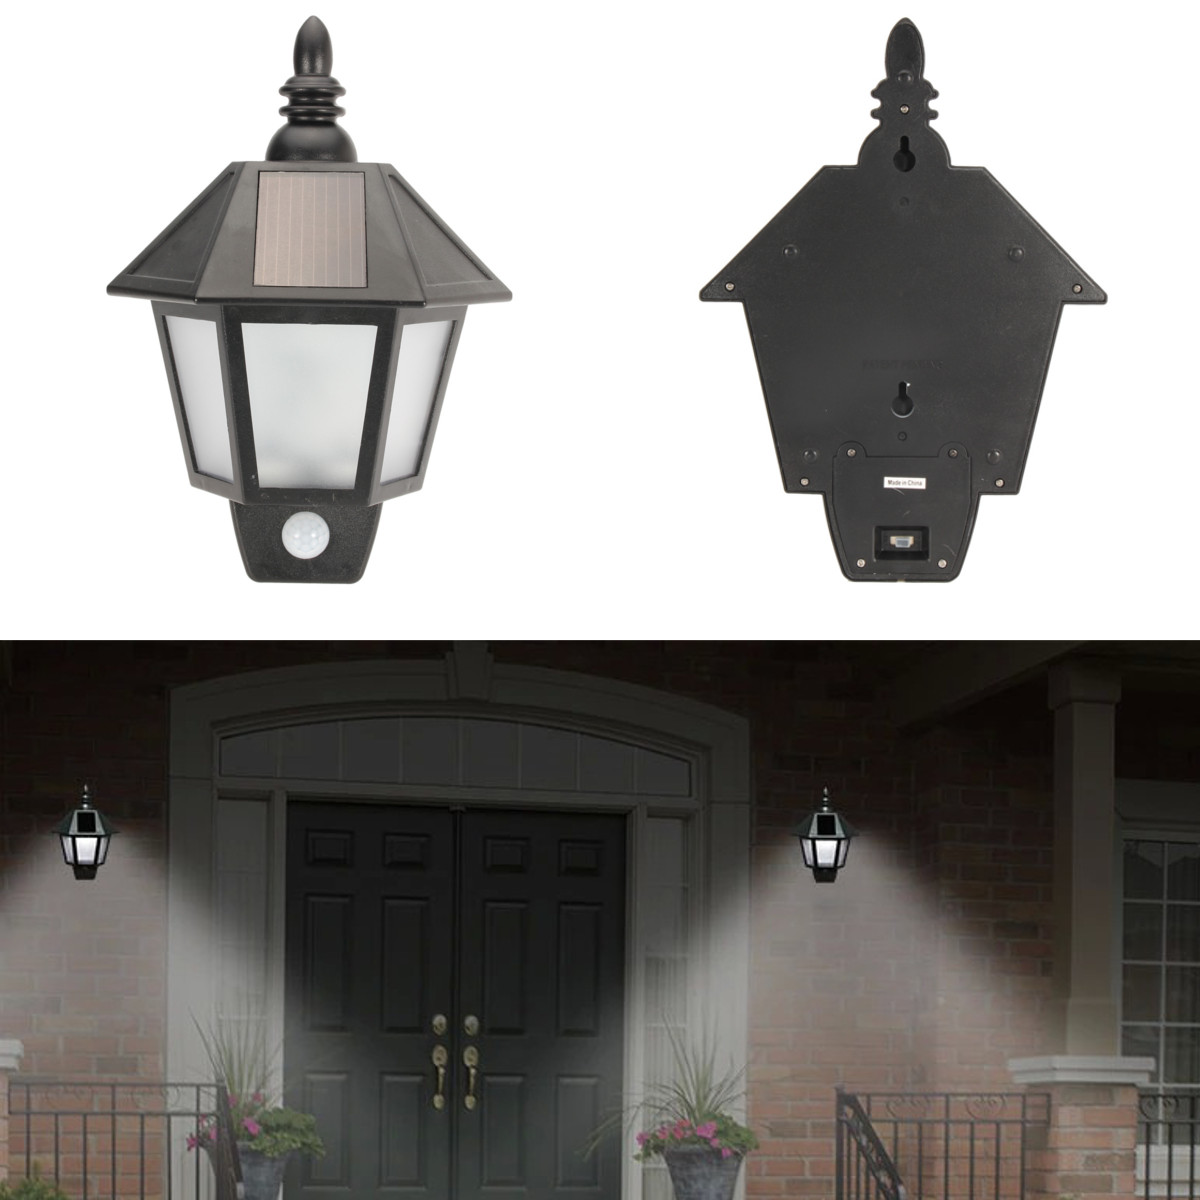 Outdoor Hanging Lamps Us 46 54 49 Off Vintage Exterior Vintage Outdoor Hanging Lantern Pendant Light Garden Porch Courtyard Lawn Street Led Hanging Lamp In Wall Lamps